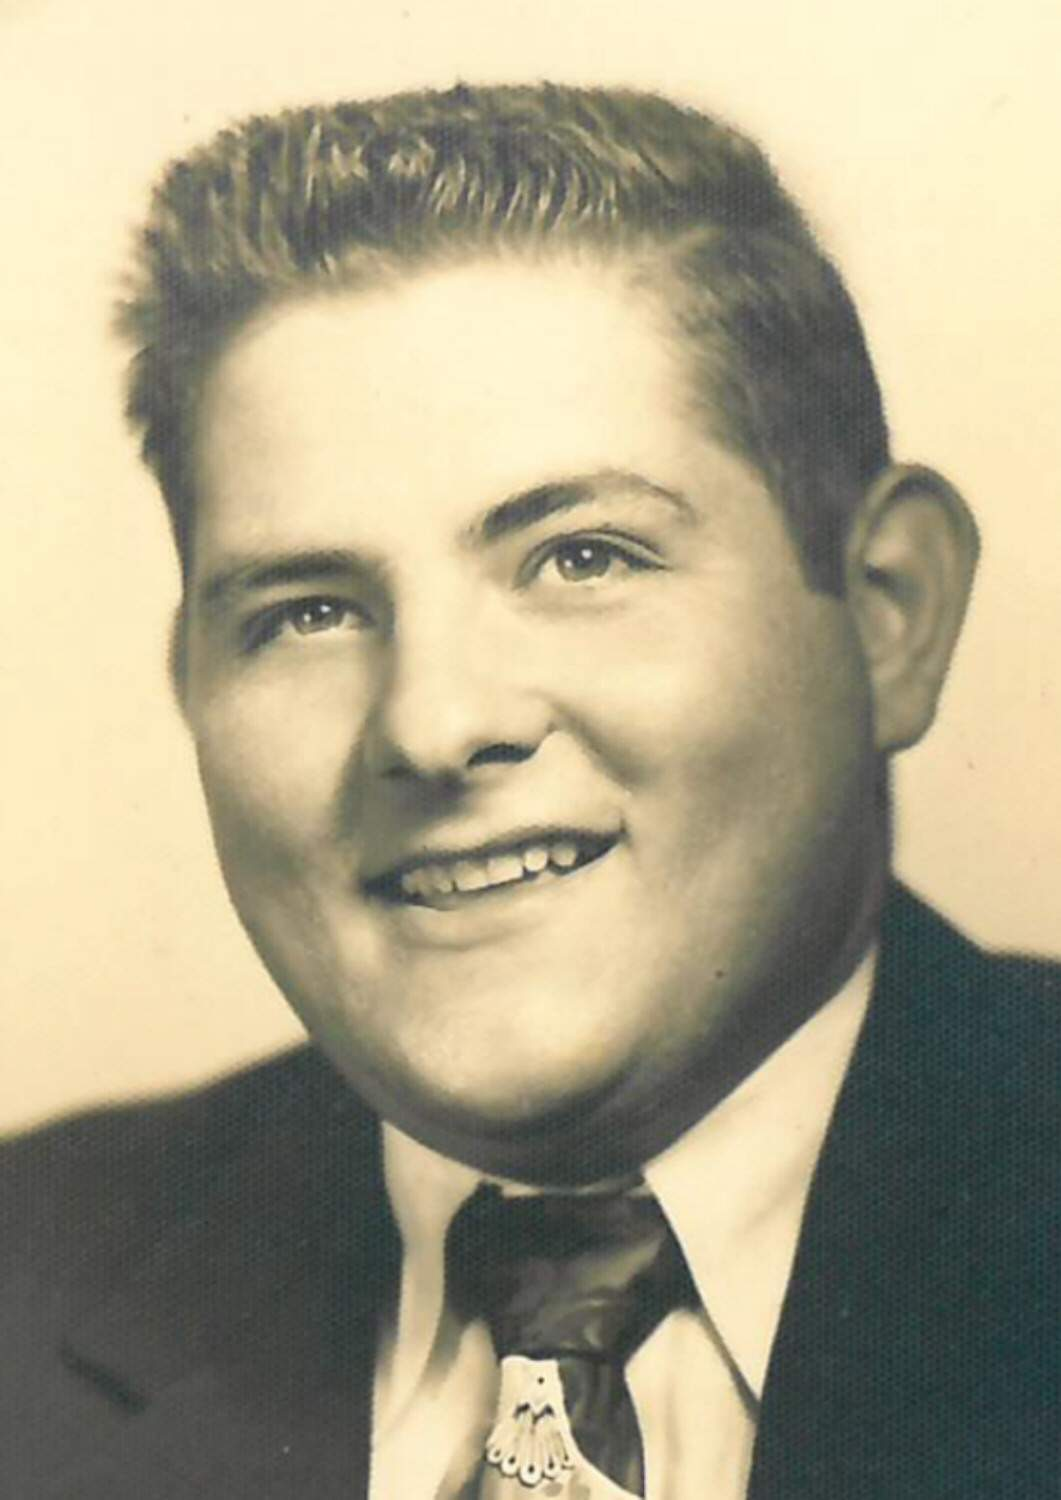 William Gauch, Jr., of Elkville